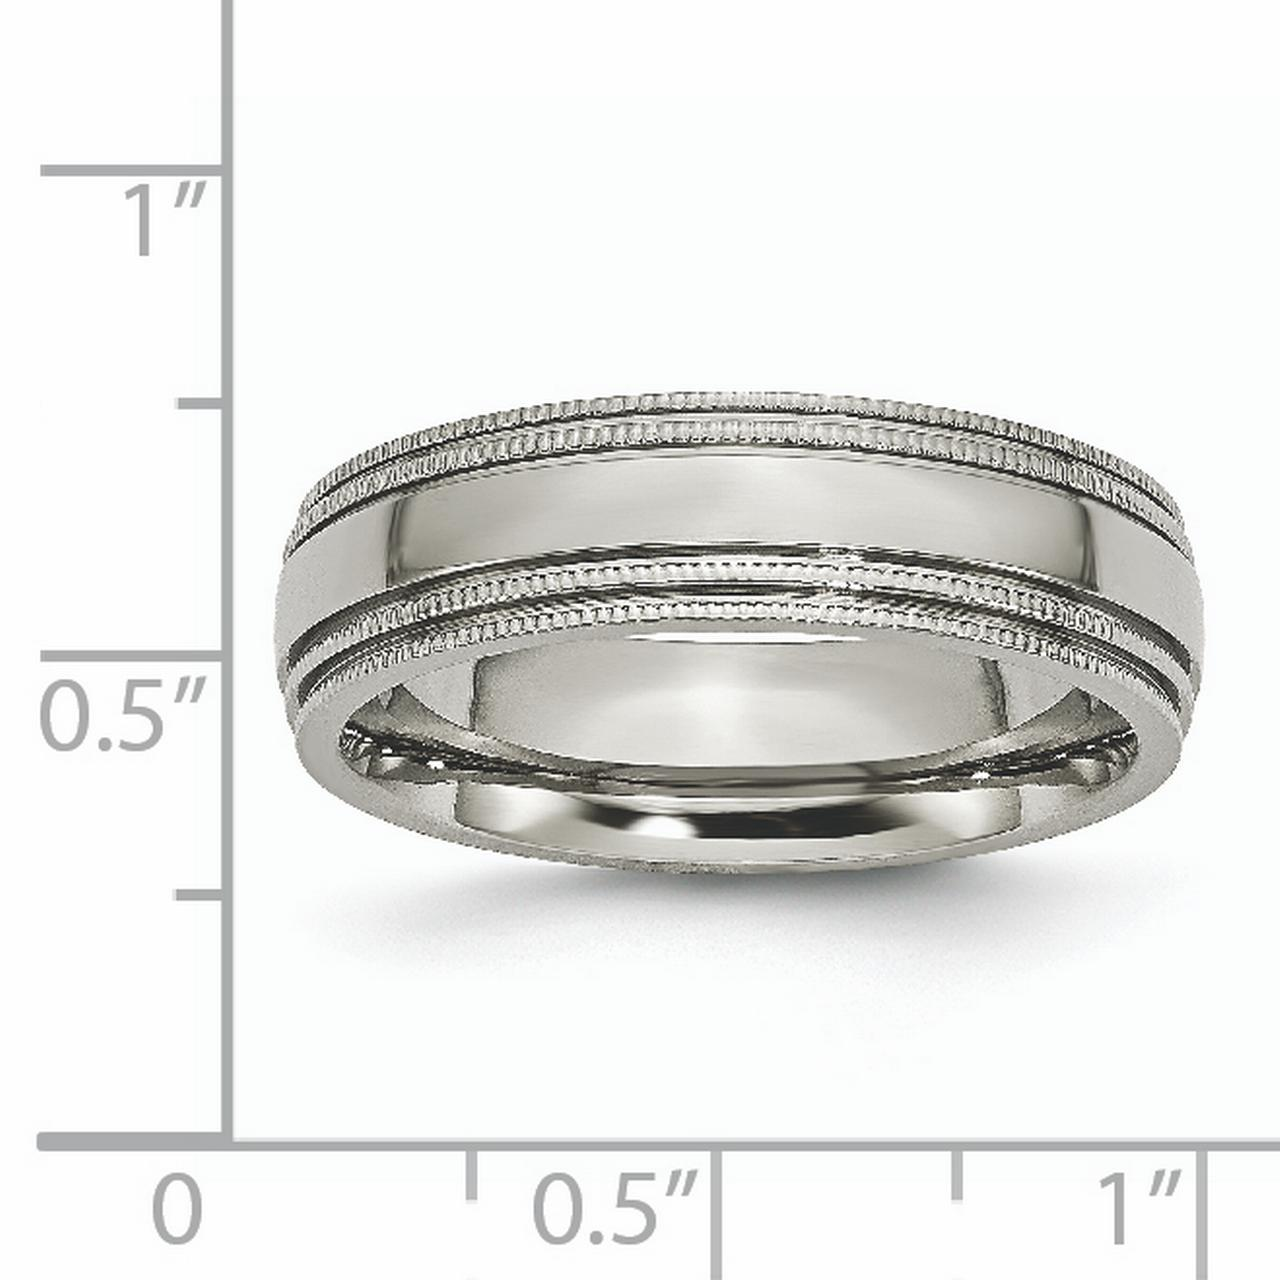 Titanium Grooved Beaded Edge 6mm Wedding Ring Band Size 11.00 Classic Milgrain Fashion Jewelry Gifts For Women For Her - image 5 de 6